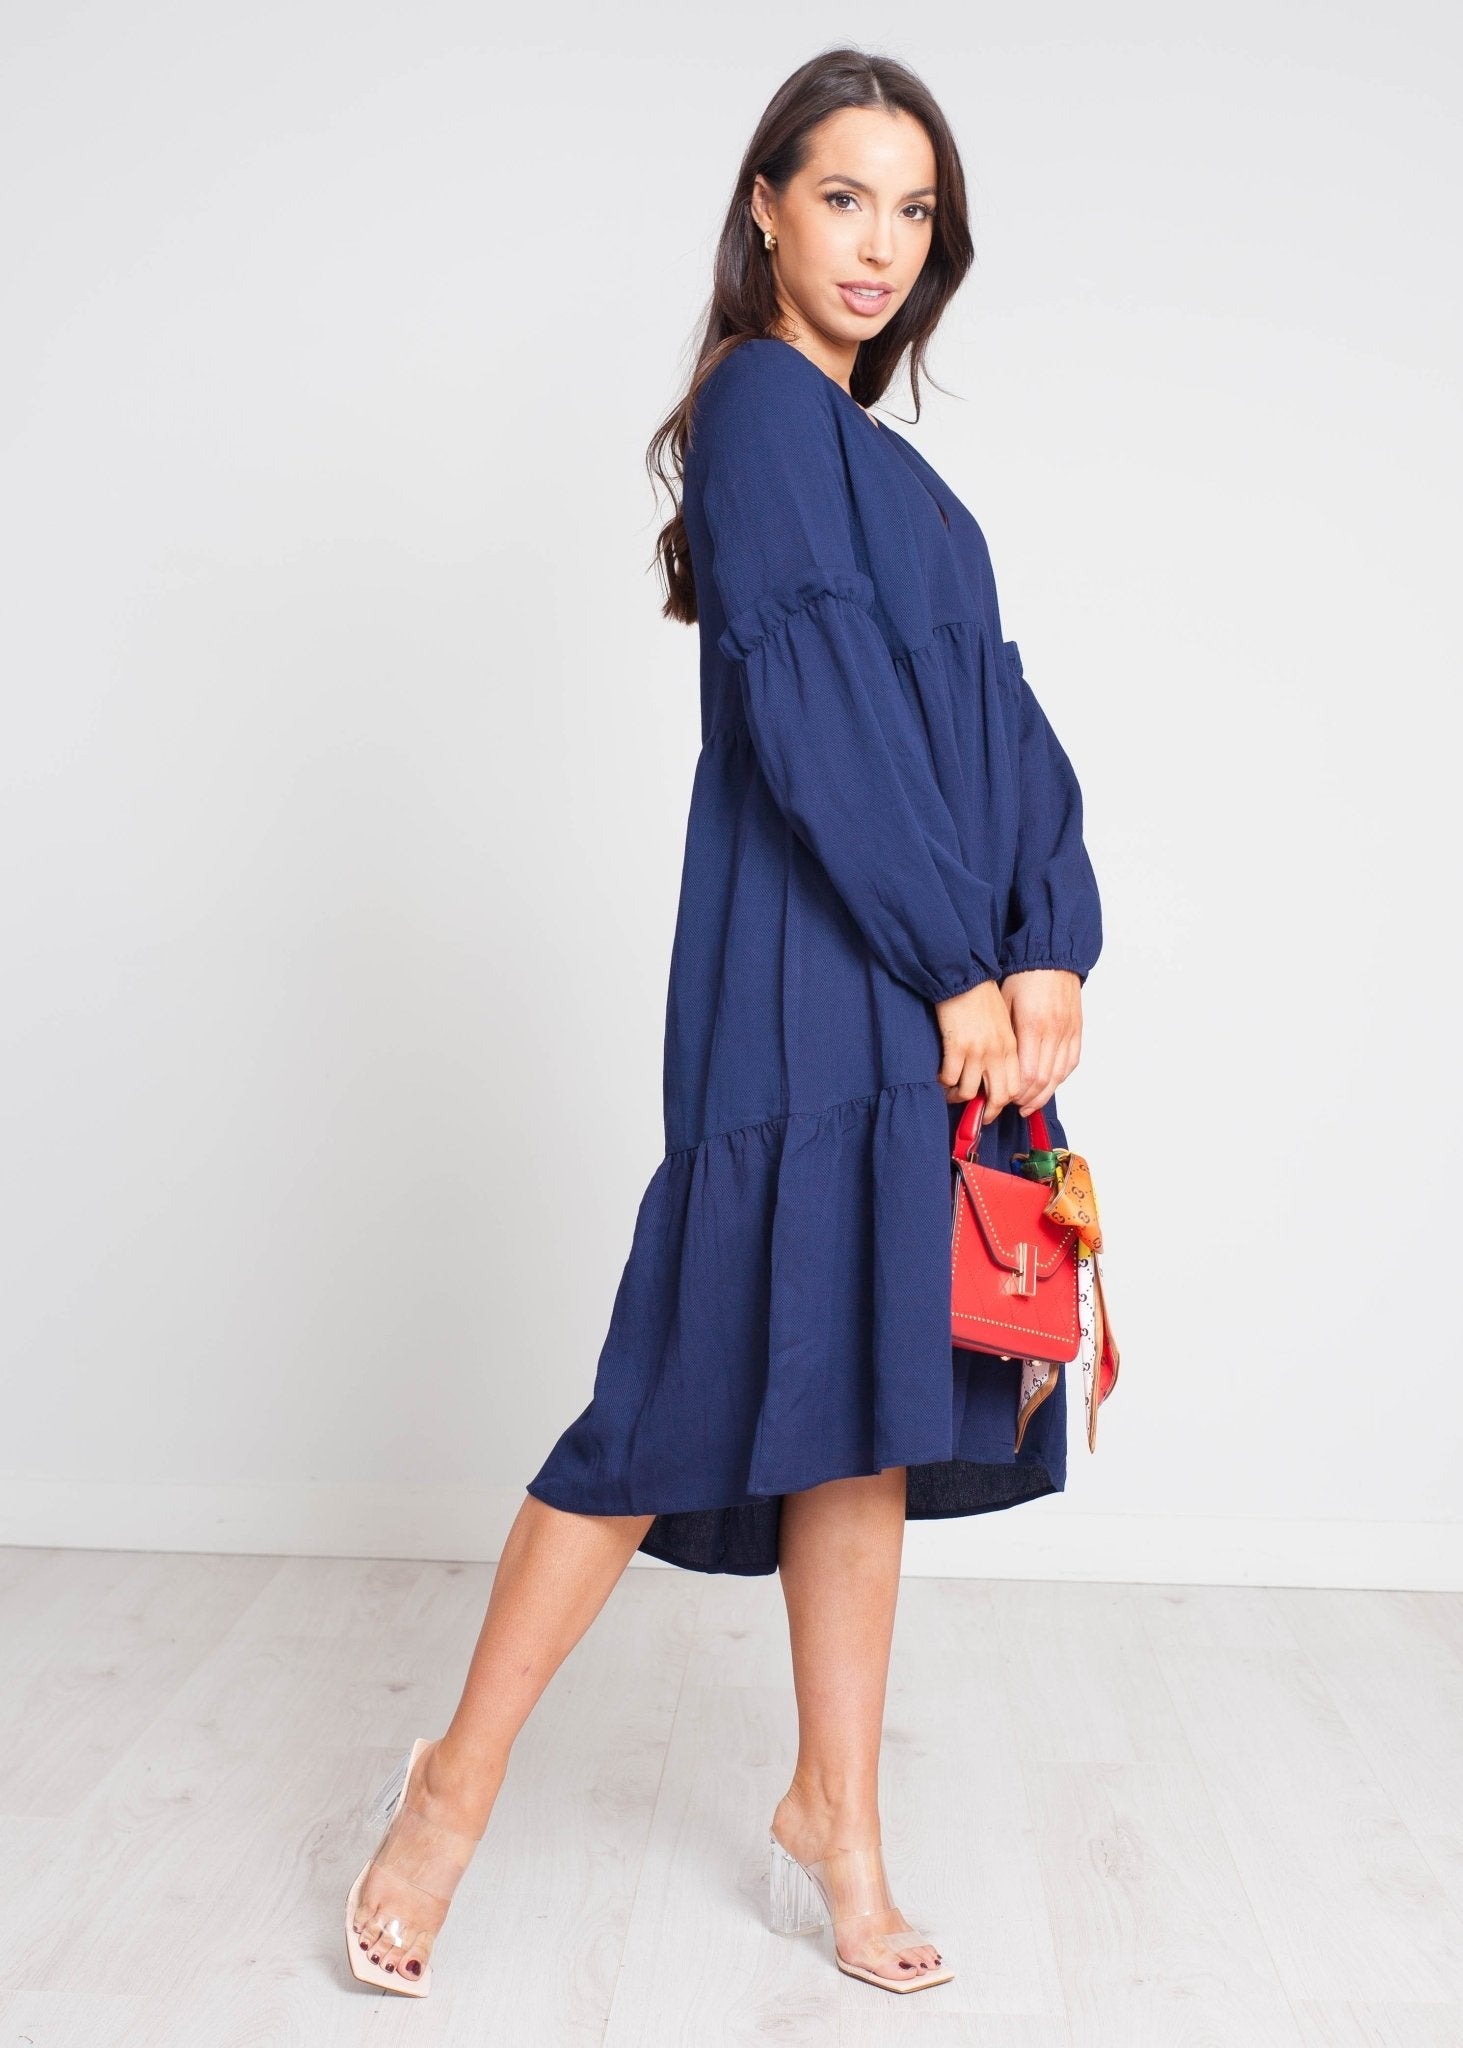 Becca Tiered Dress In Navy - The Walk in Wardrobe